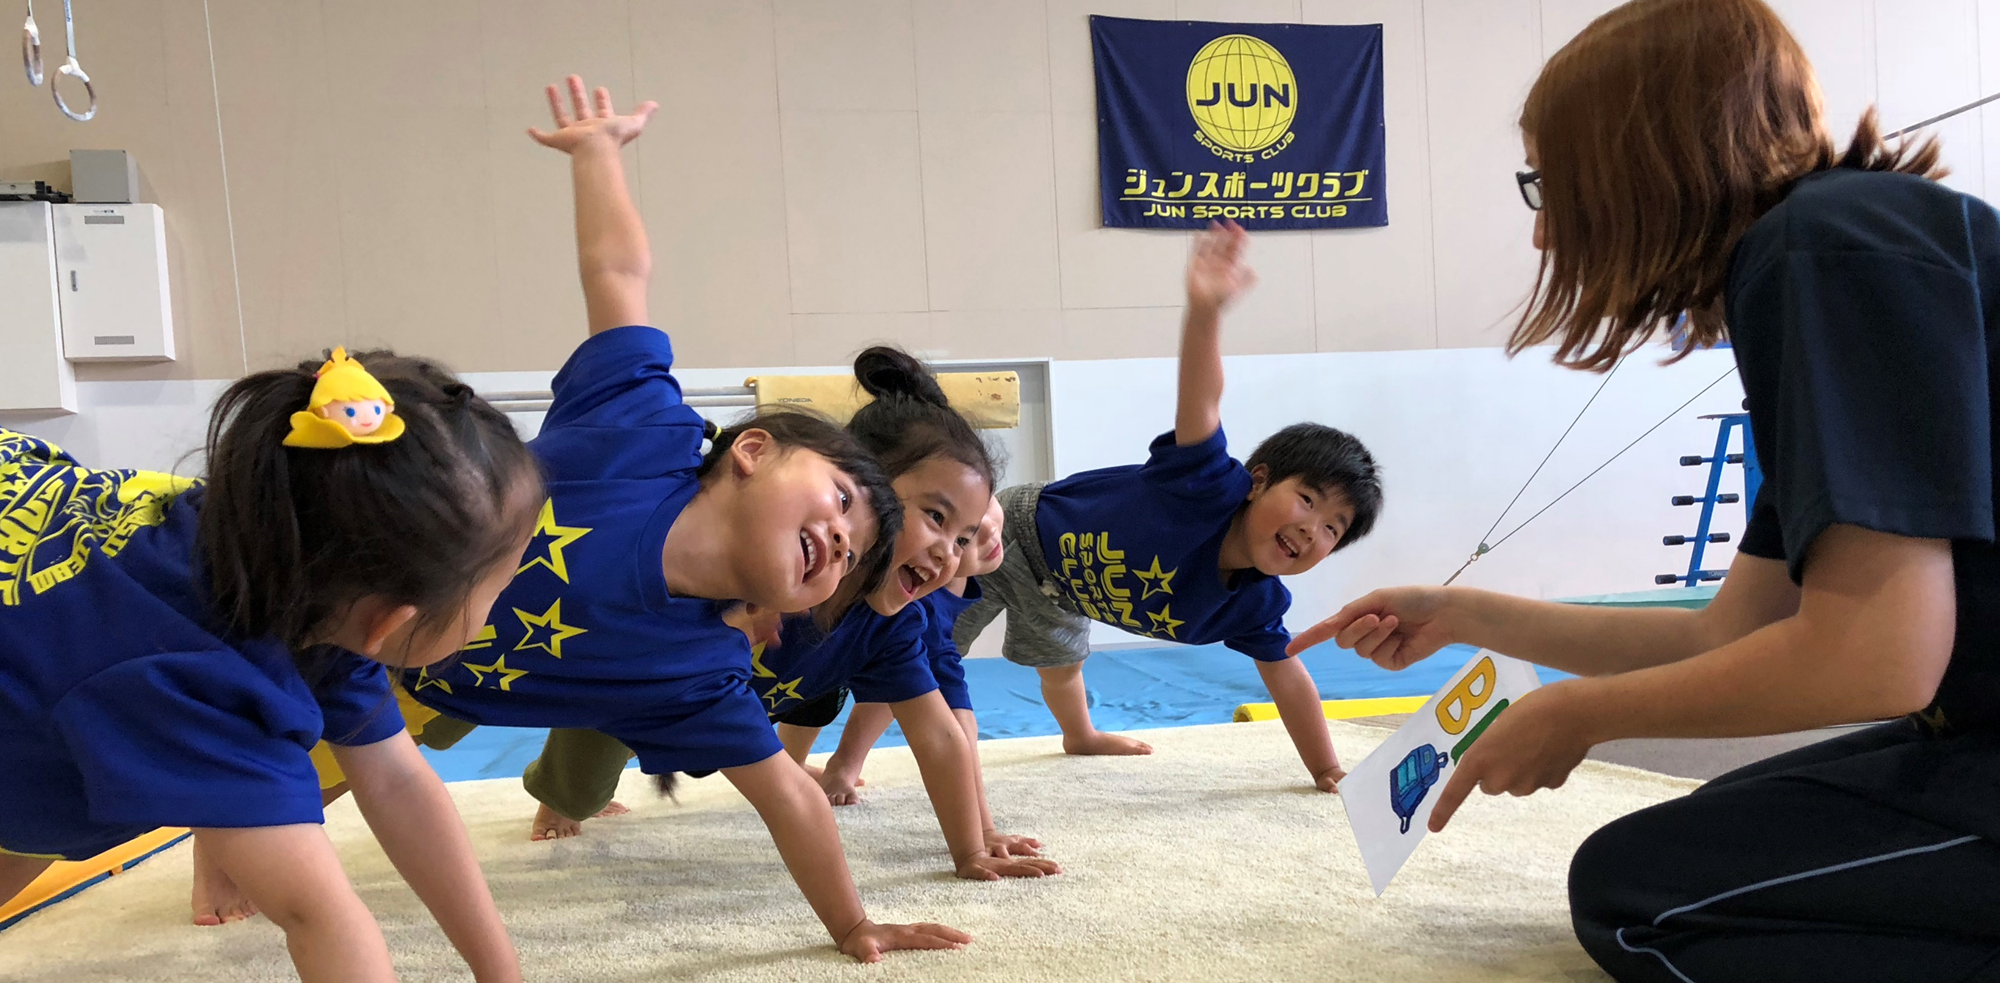 Kid's ENGLSH powered by ジュンスポーツクラブ東札幌